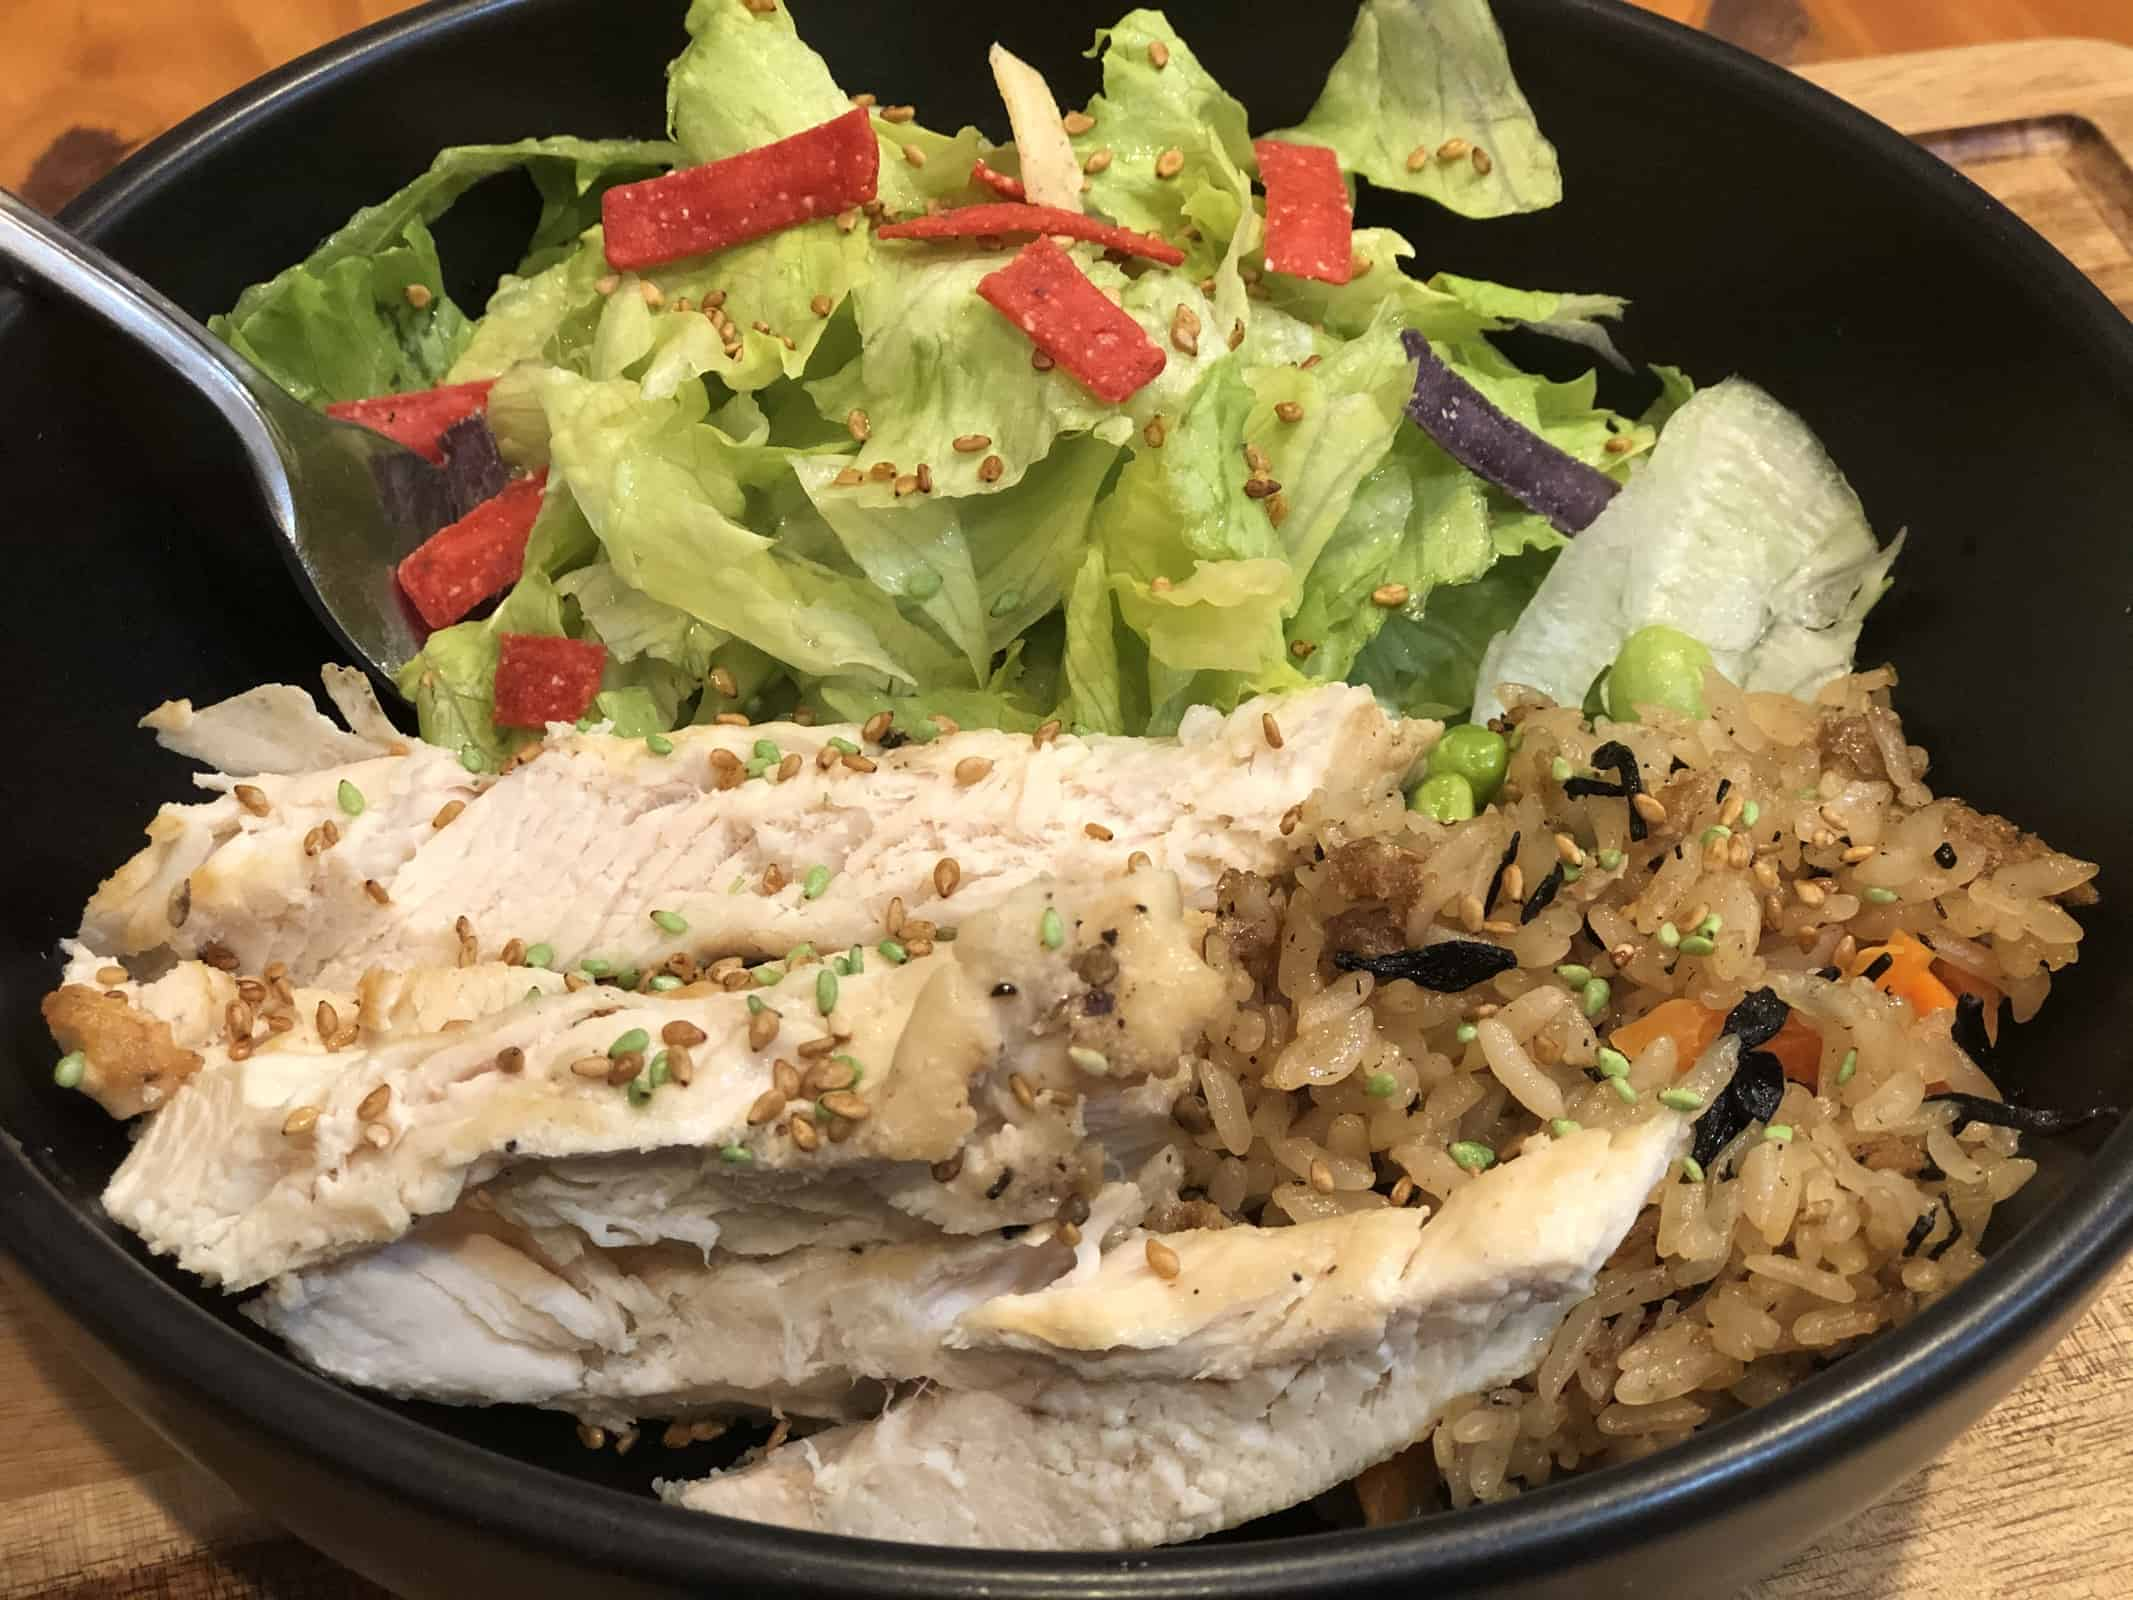 Instant Pot Chicken with Salad in a black bowl